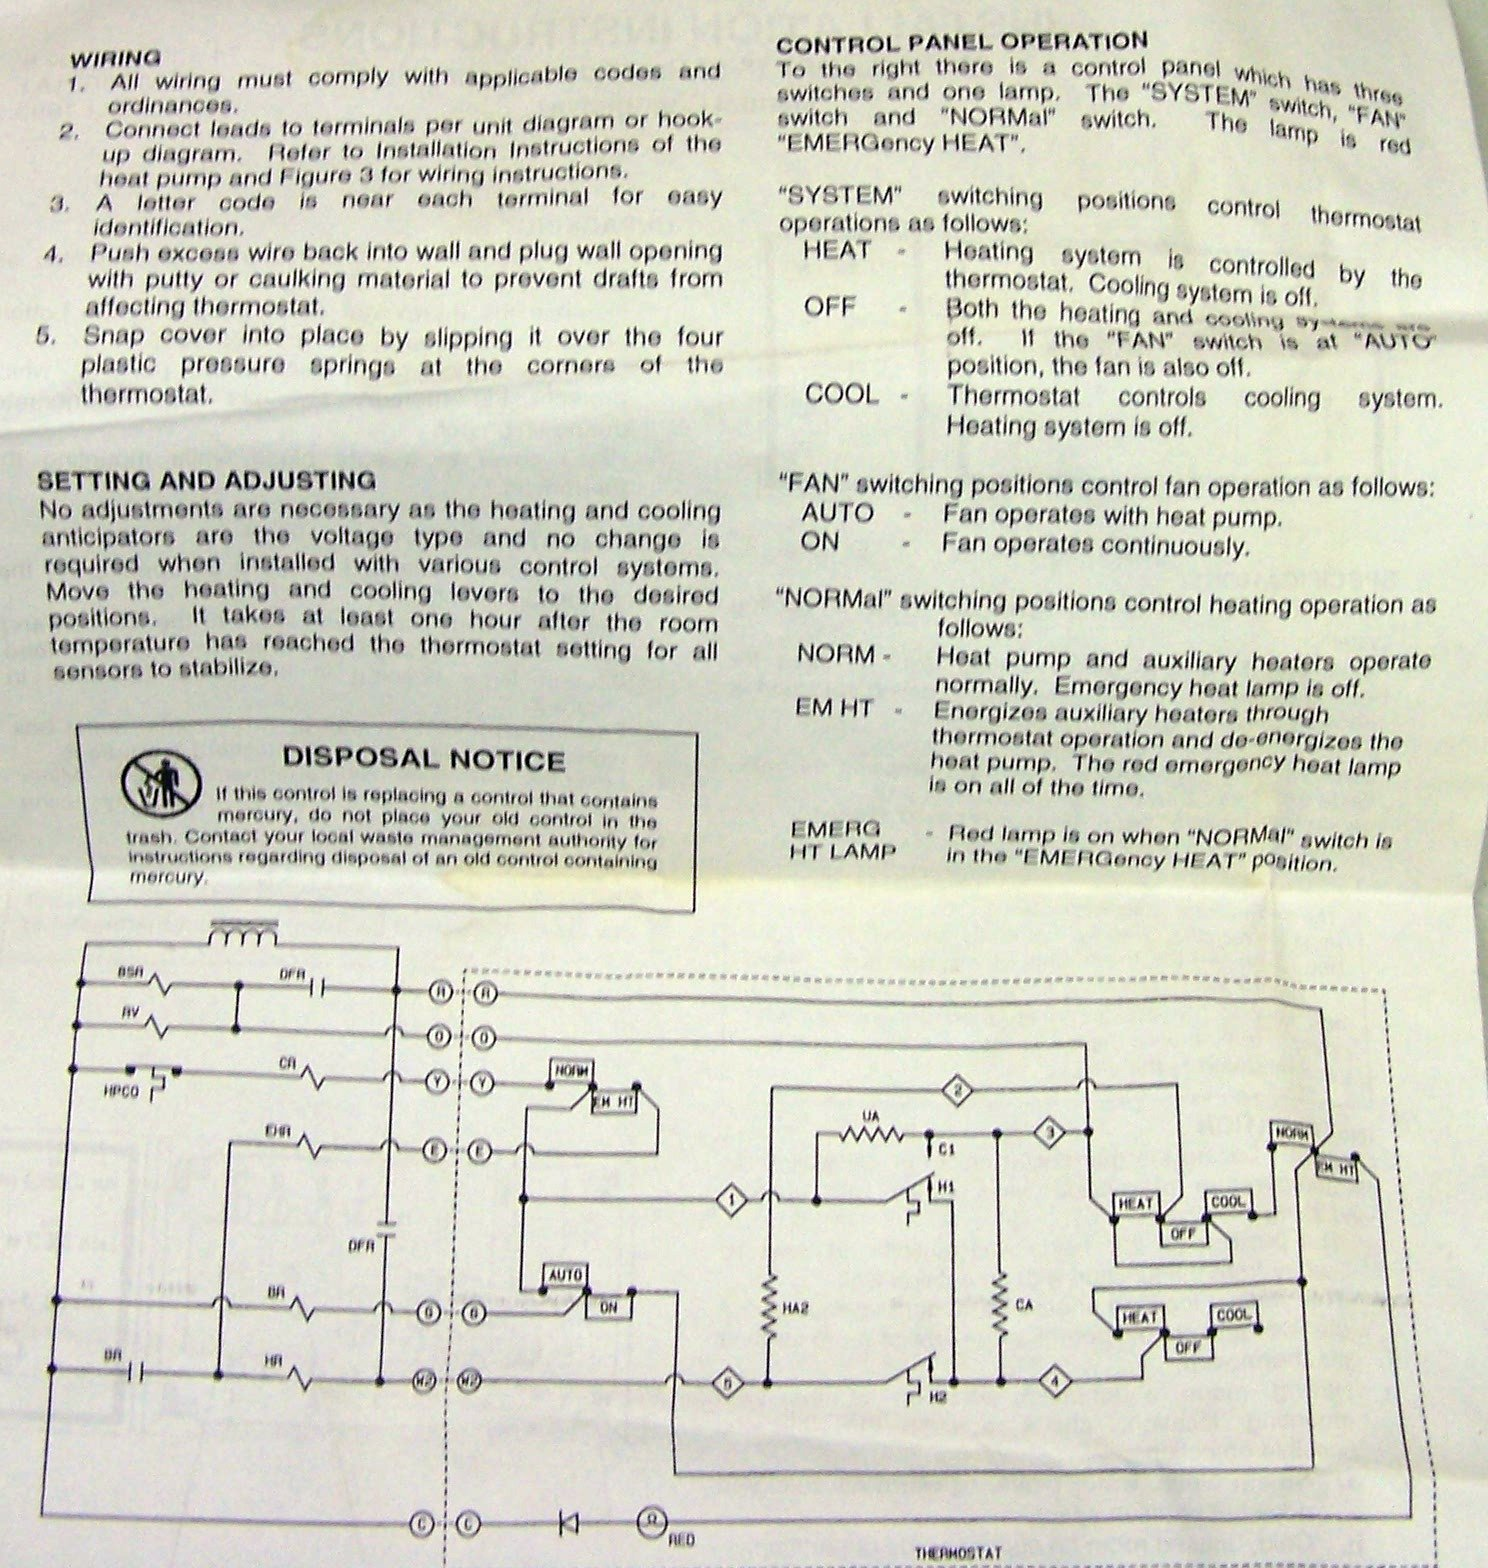 101_7865 hpt18 60 goodman heat pump thermostat with emergency heat janitrol thermostat hpt 18-60 wiring diagram at alyssarenee.co